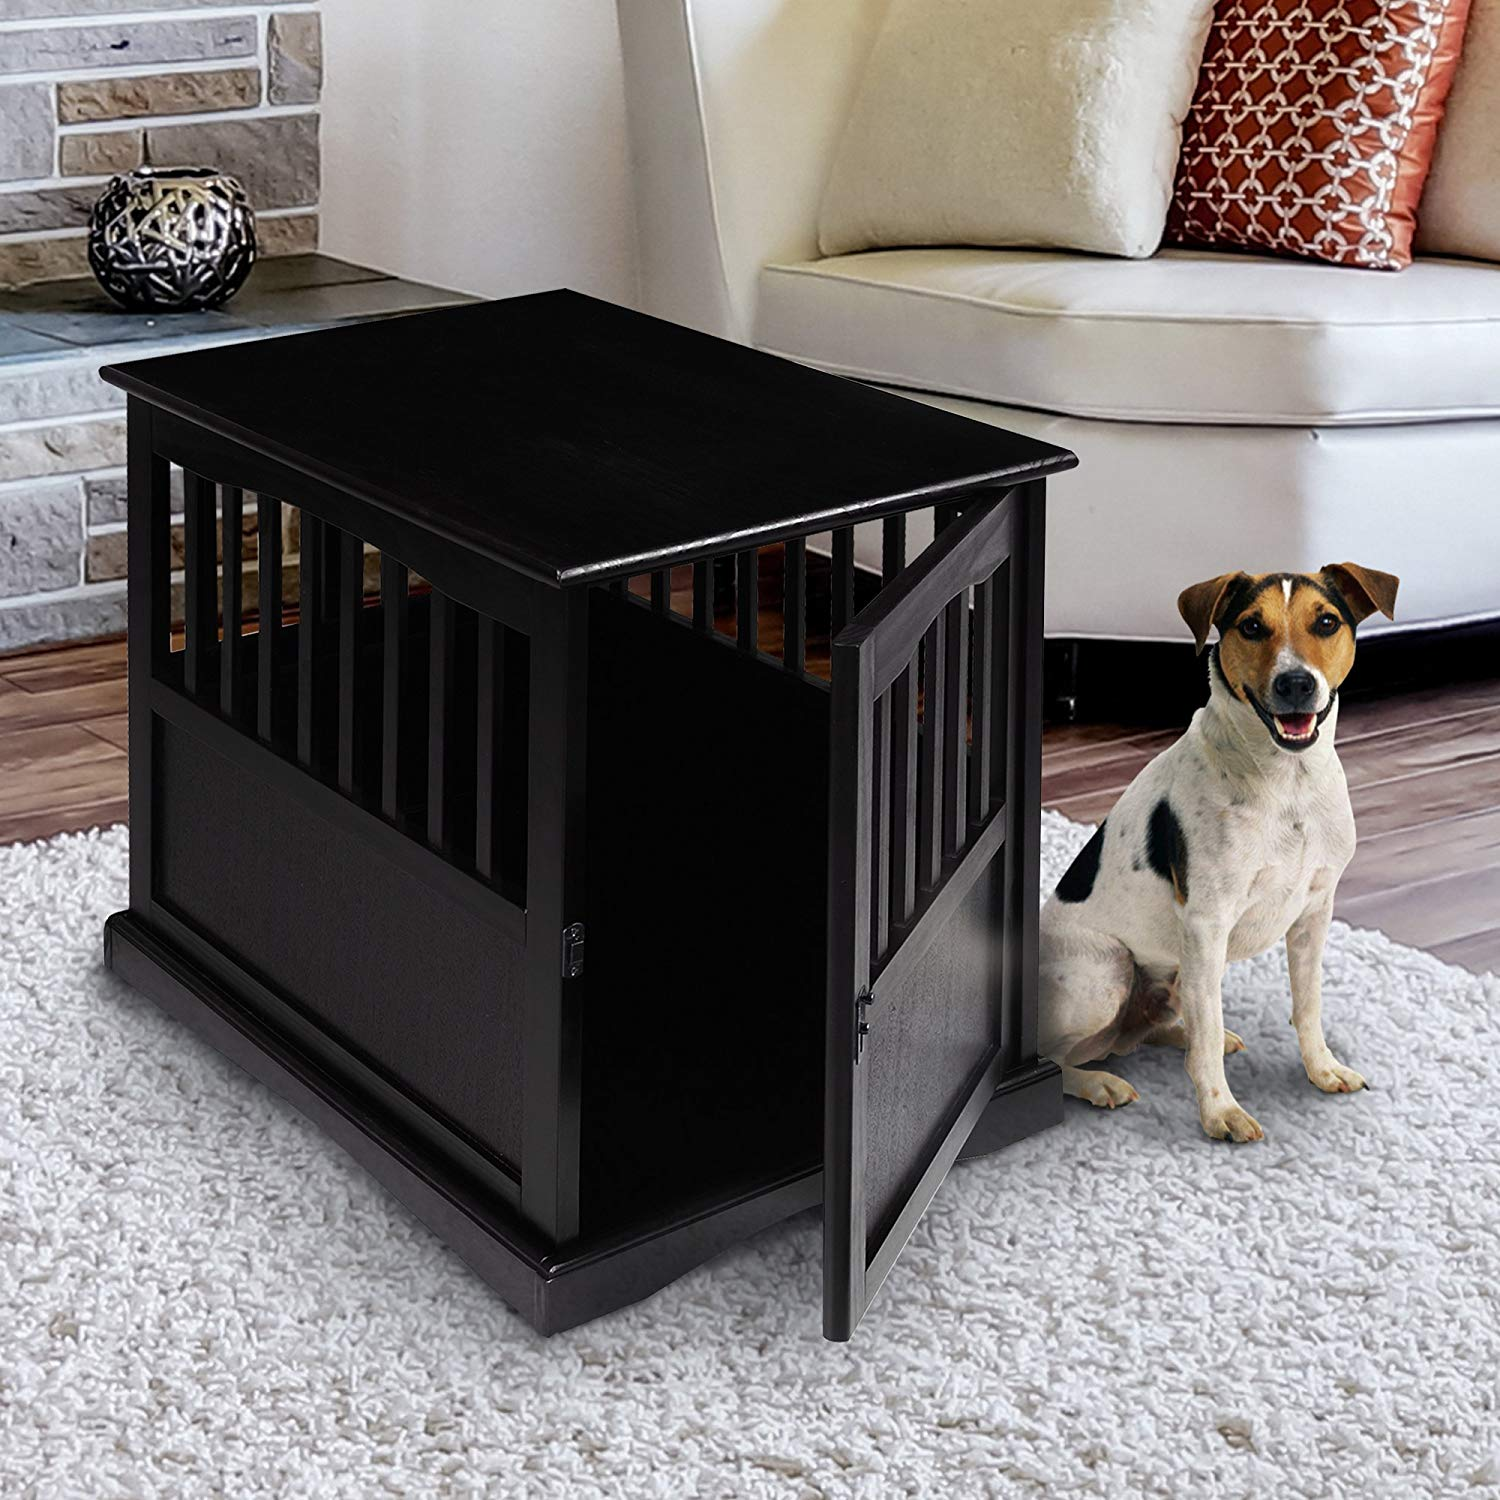 casual home small pet dog crate end table black kitchen wide console iron living room furniture well made bedroom traditional coffee legs mainstays shelf bookcase instructions